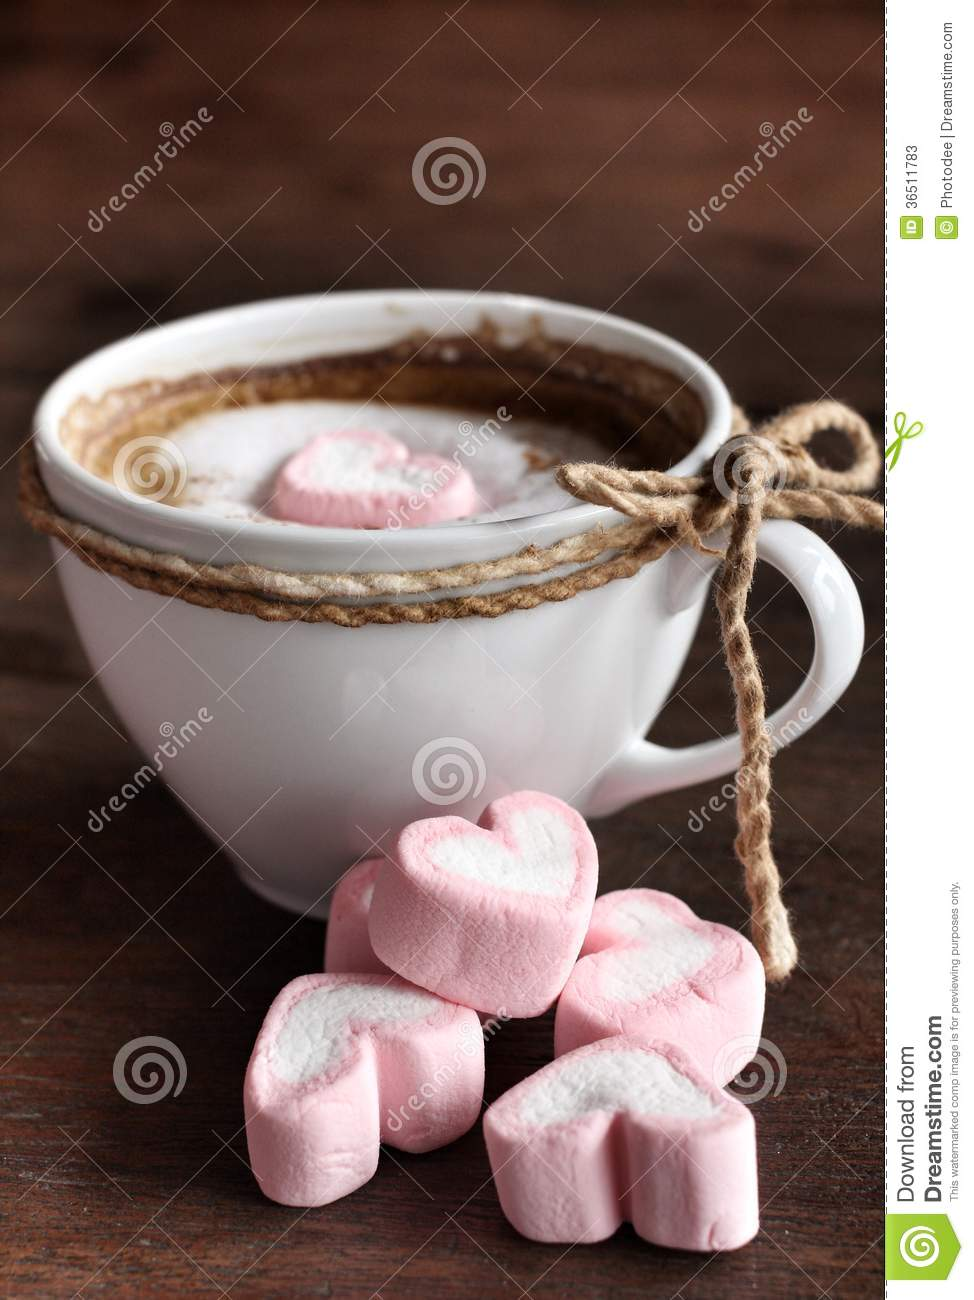 chocolat chaud avec la guimauve de rose de coeur photos stock image 36511783. Black Bedroom Furniture Sets. Home Design Ideas